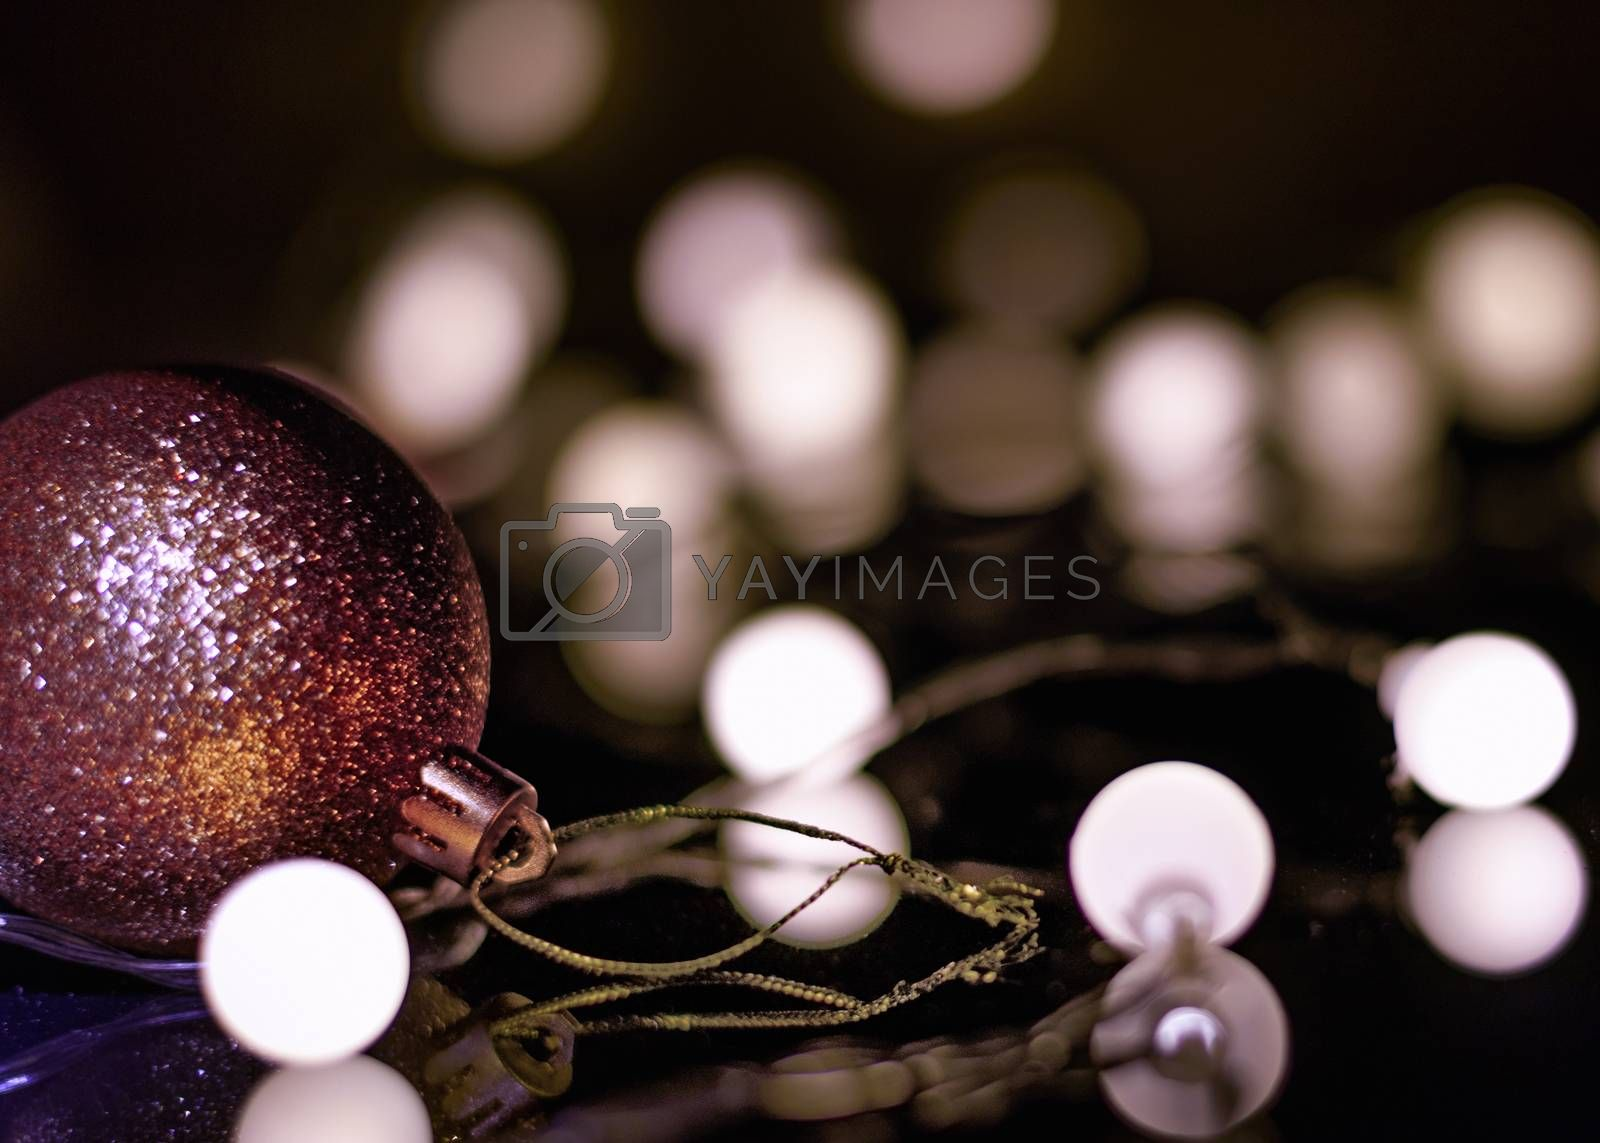 Royalty free image of Christmas toy and garland by VladimirZubkov